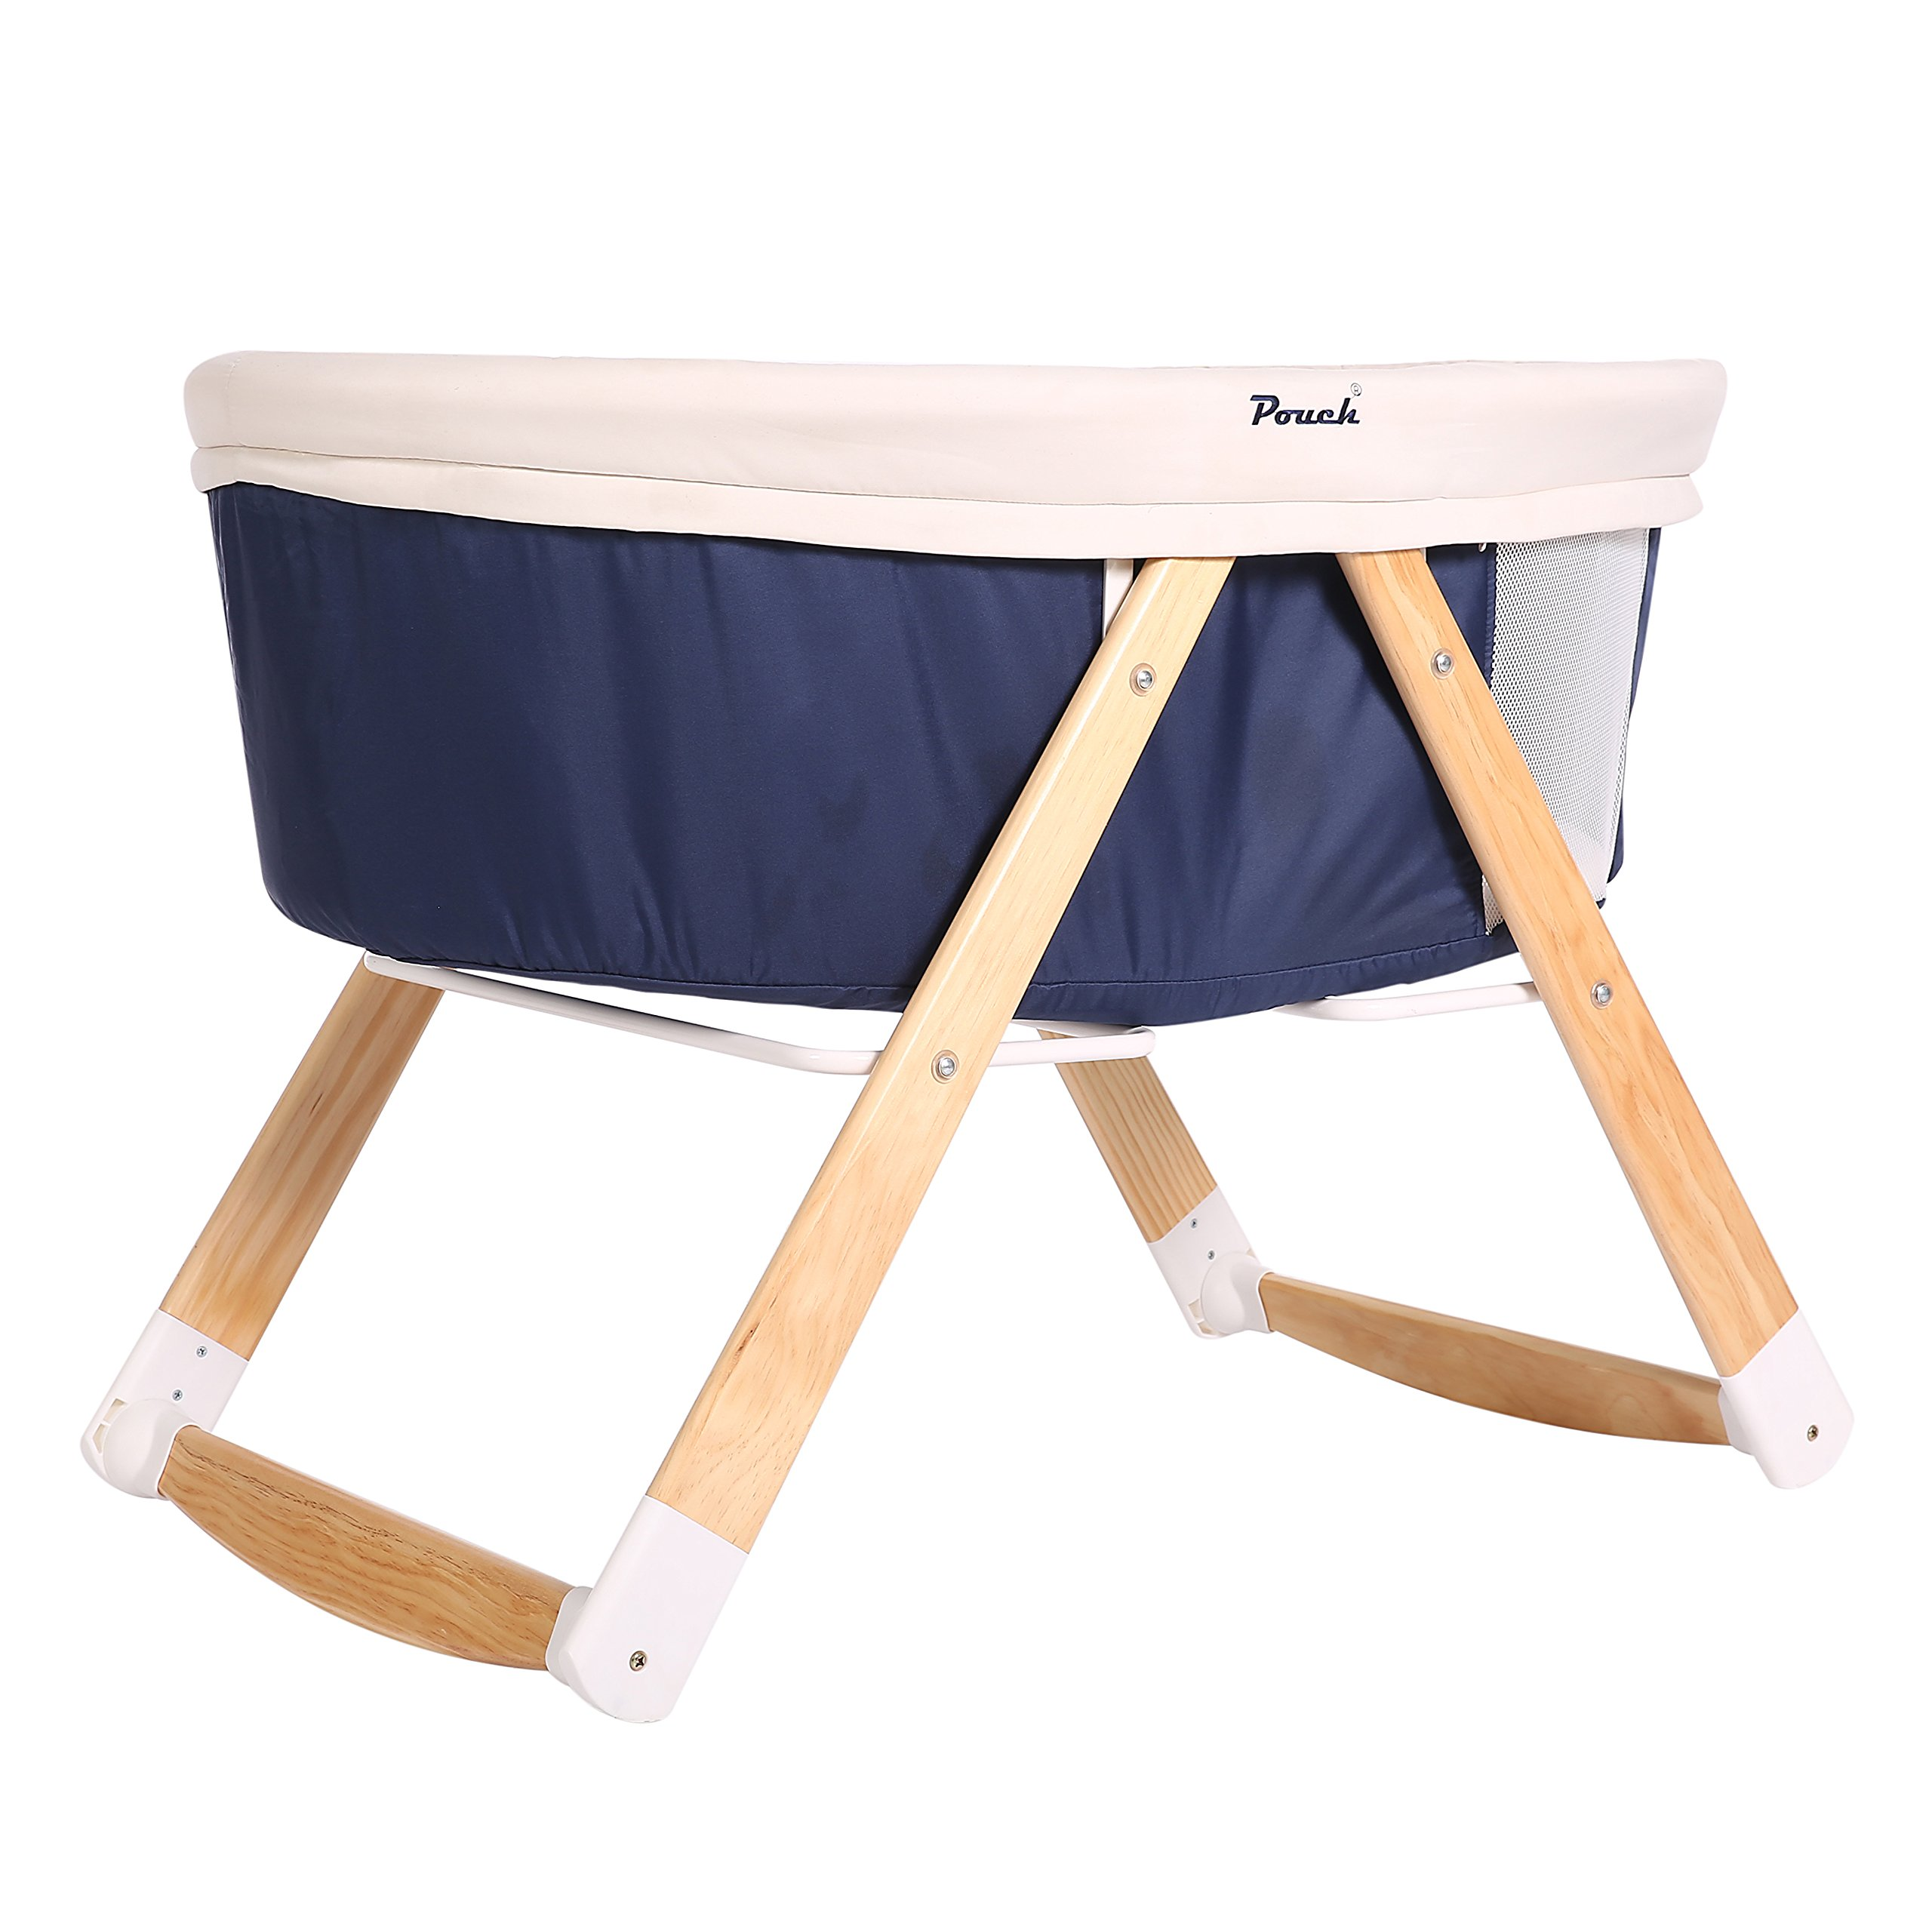 C&AHOME Baby Cradle Infant Travel Crib/Cot Multifunctional Cradle Portable Sleeper Bassinet, Blue